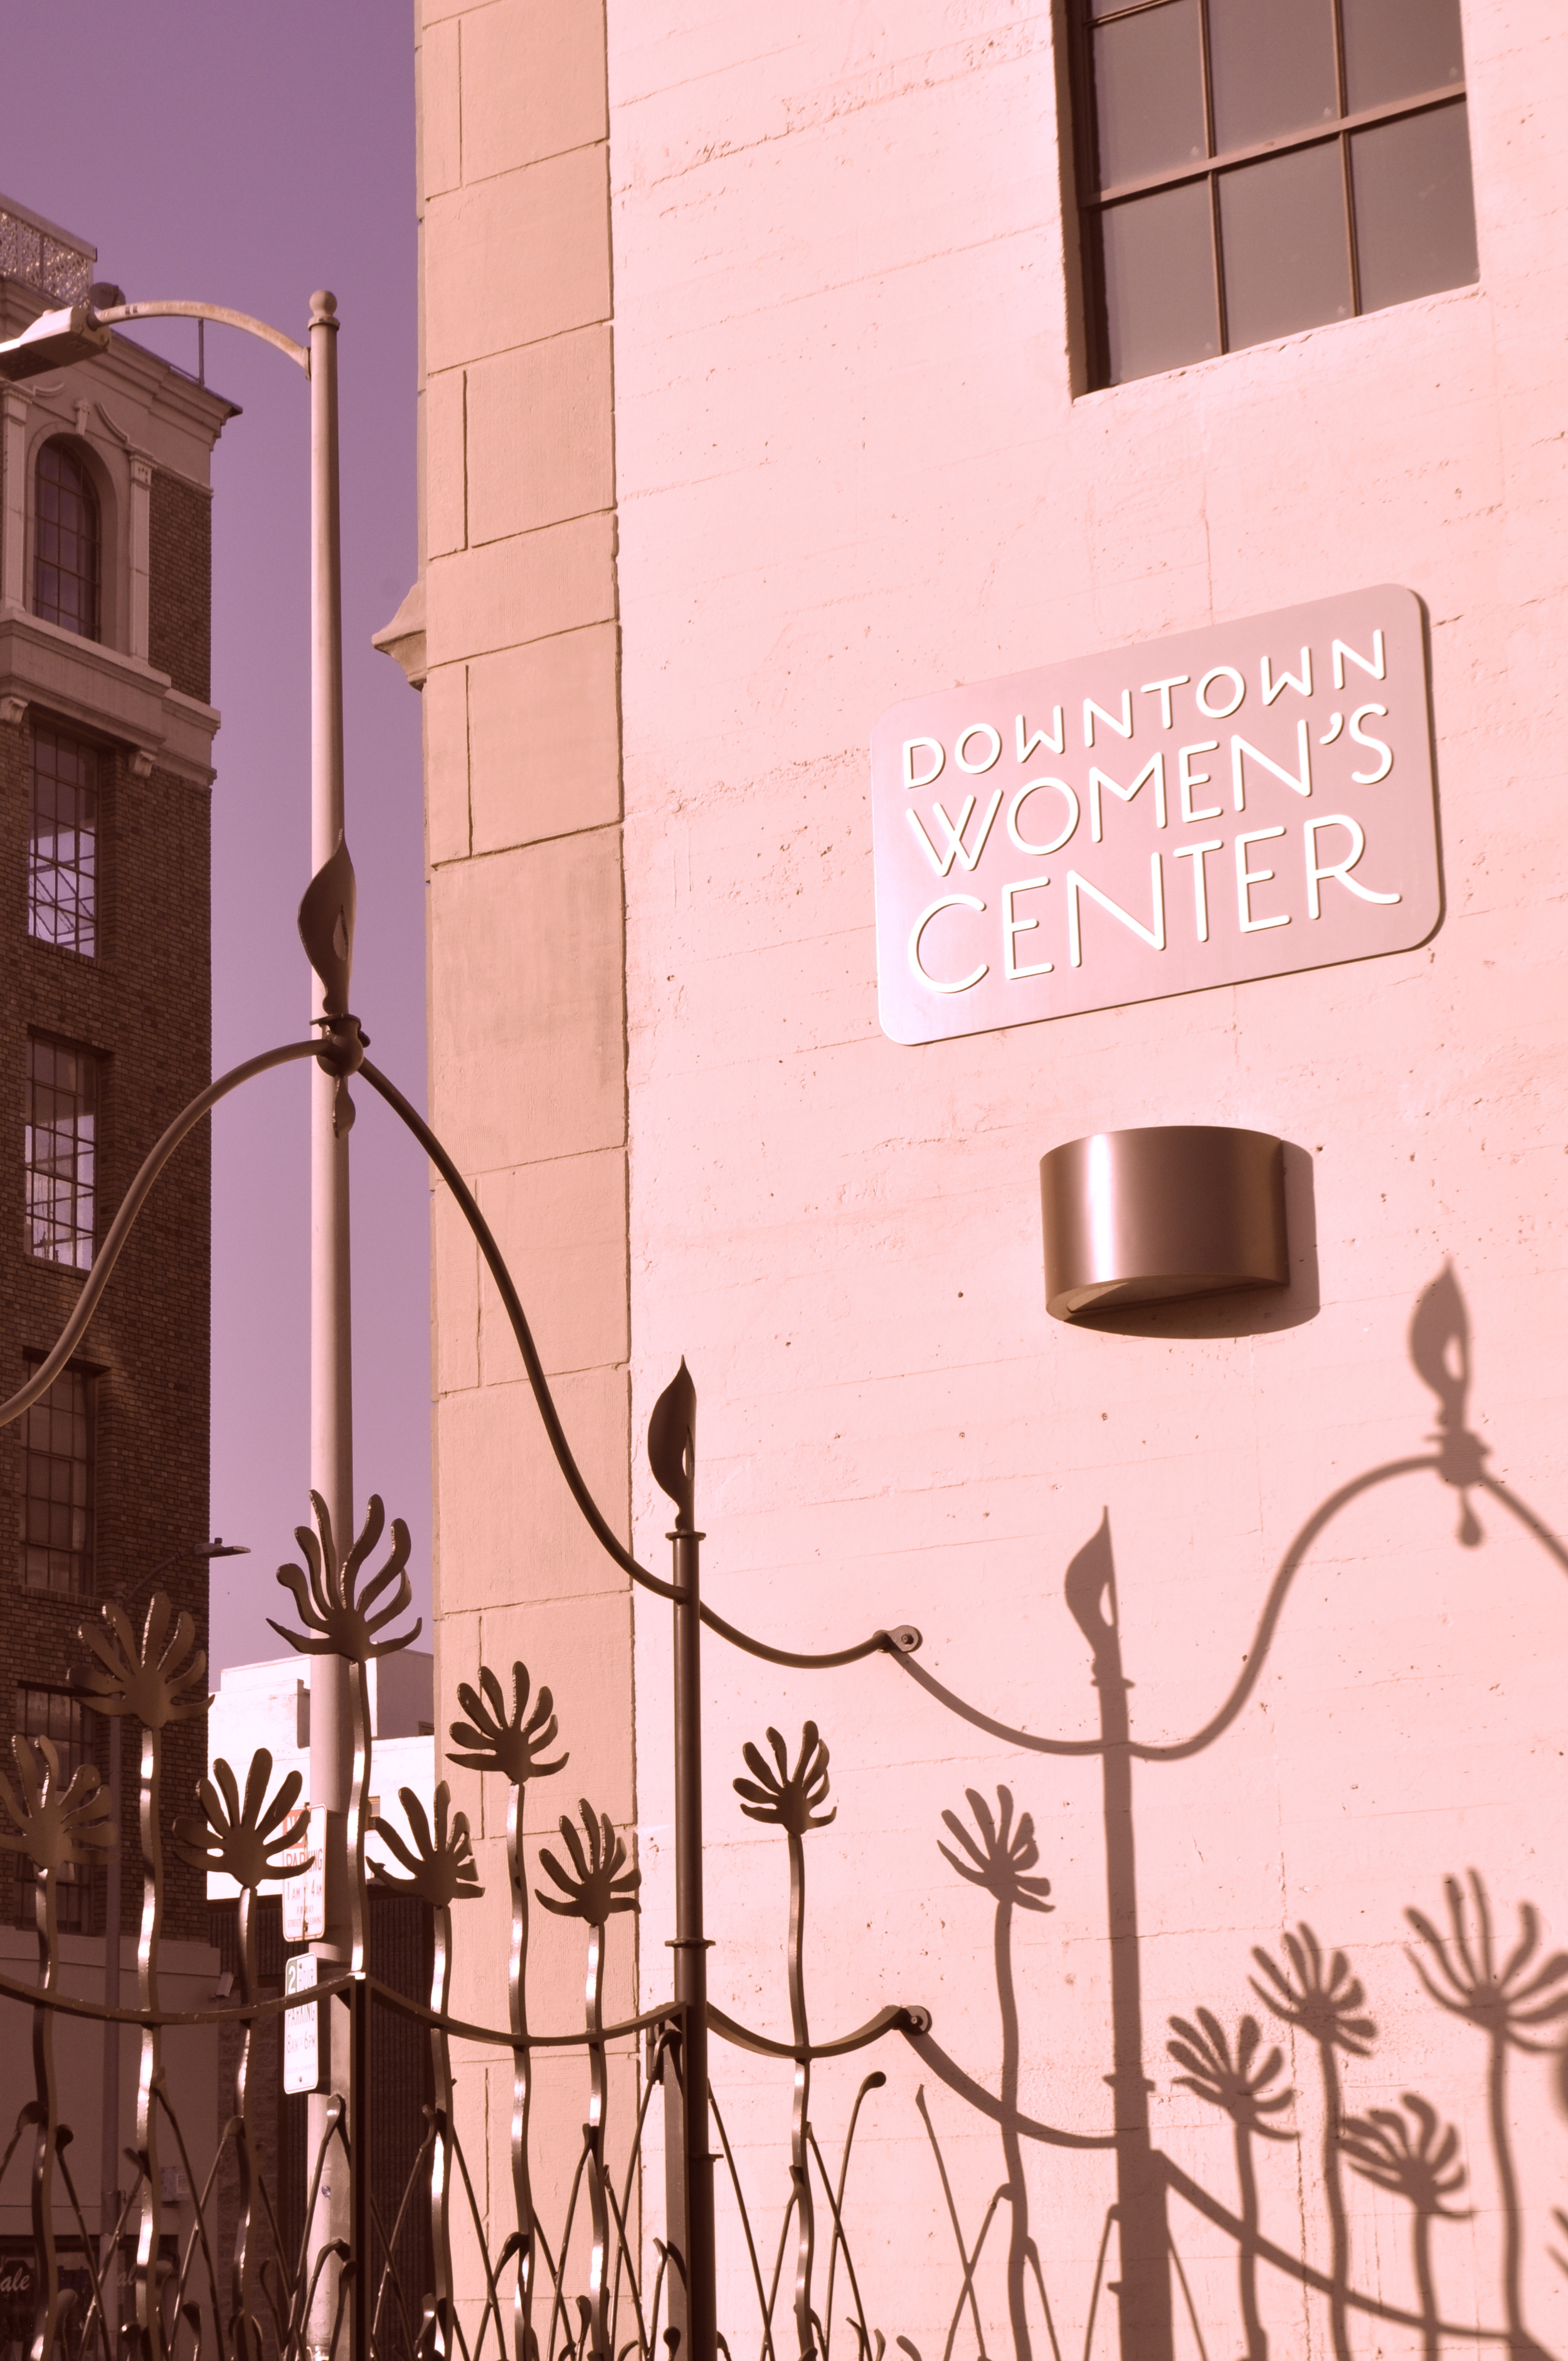 The Downtown Women's Center serves the growing population of women and children on Skid Row